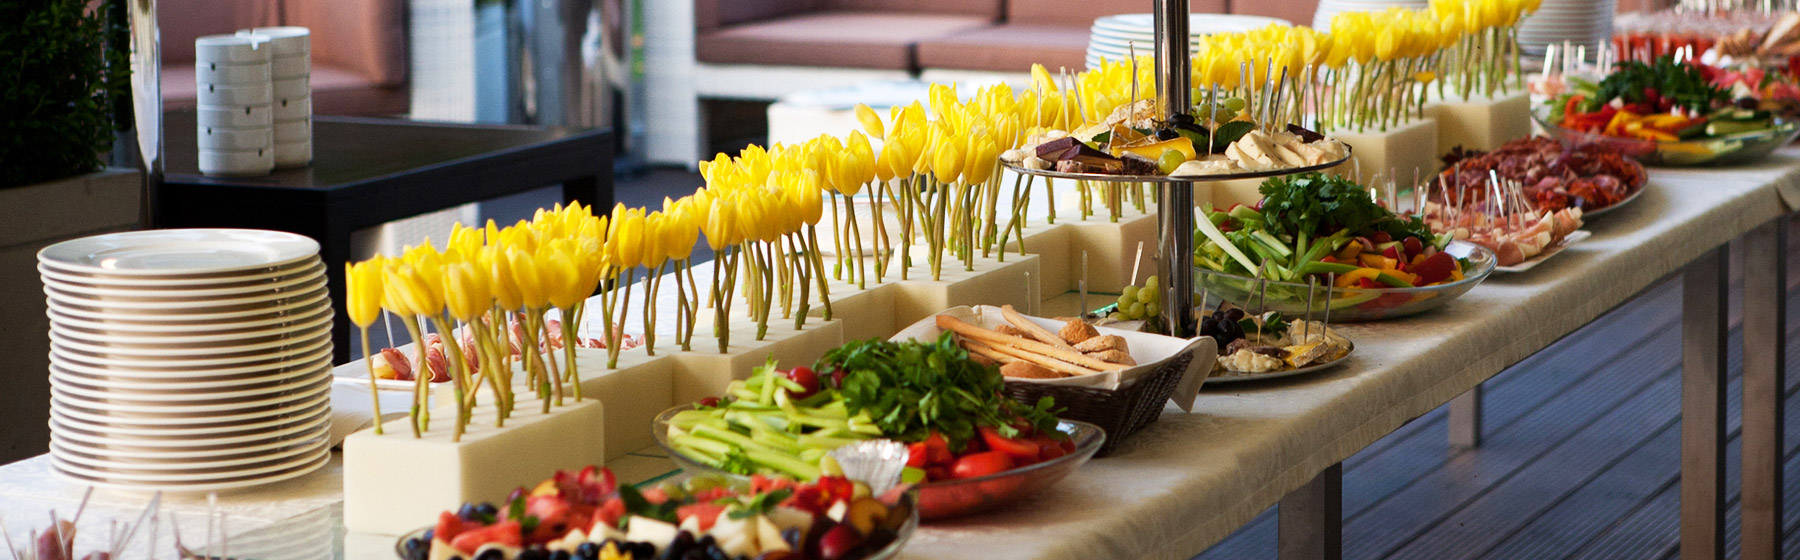 Catering Services at Our Hotel in Atlanta